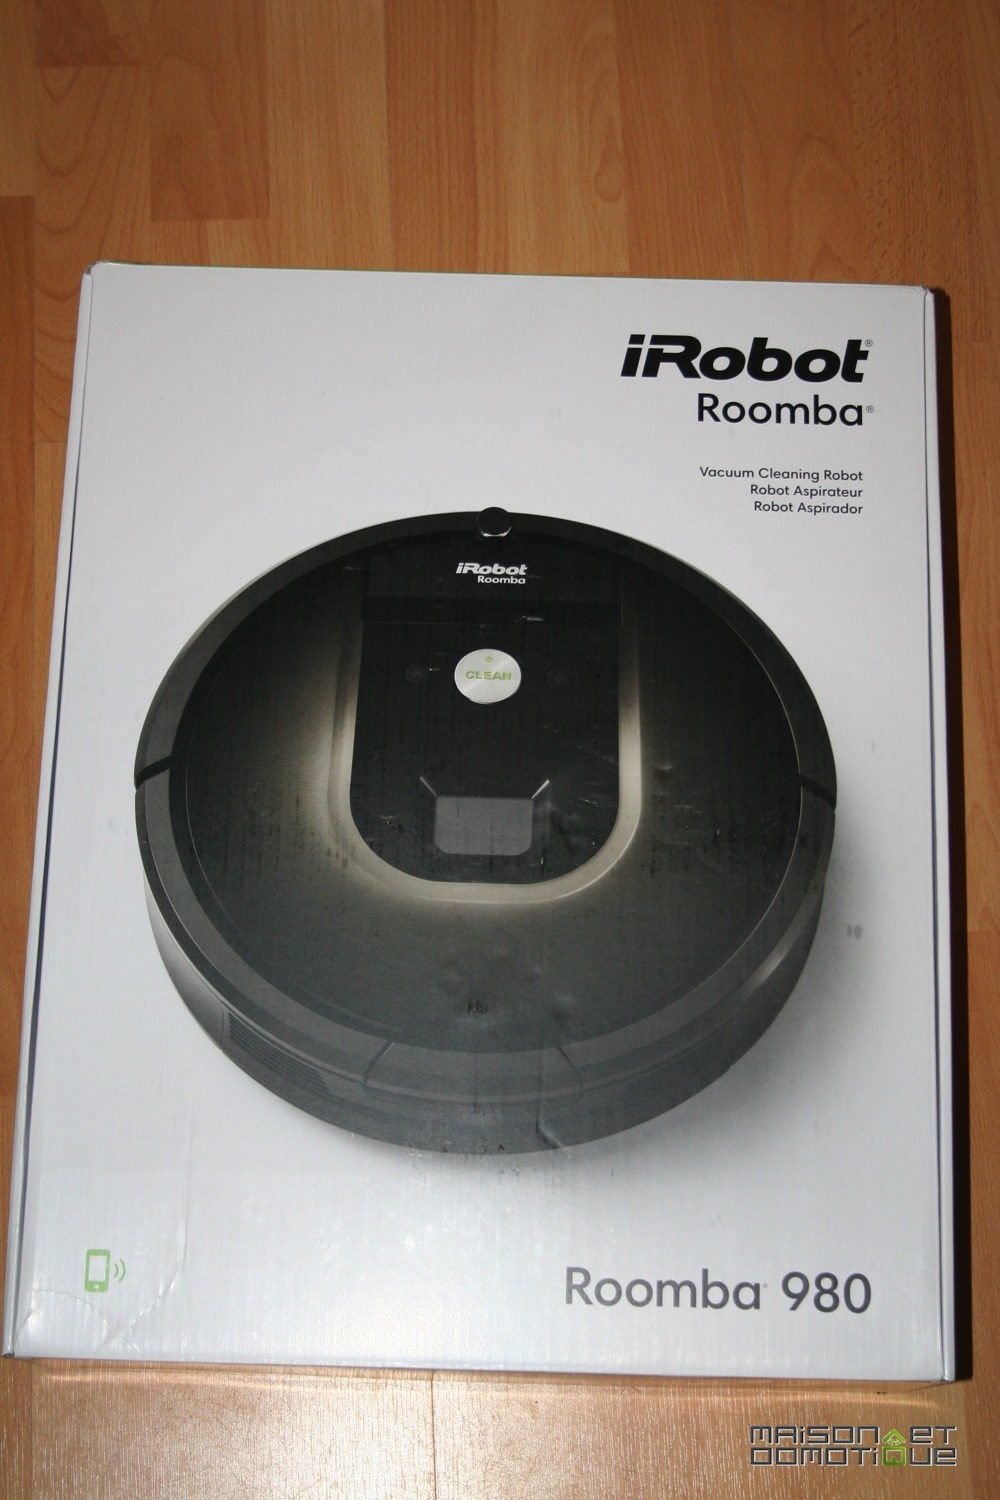 test du nouveau robot aspirateur connect de irobot le roomba 980 maison et domotique. Black Bedroom Furniture Sets. Home Design Ideas